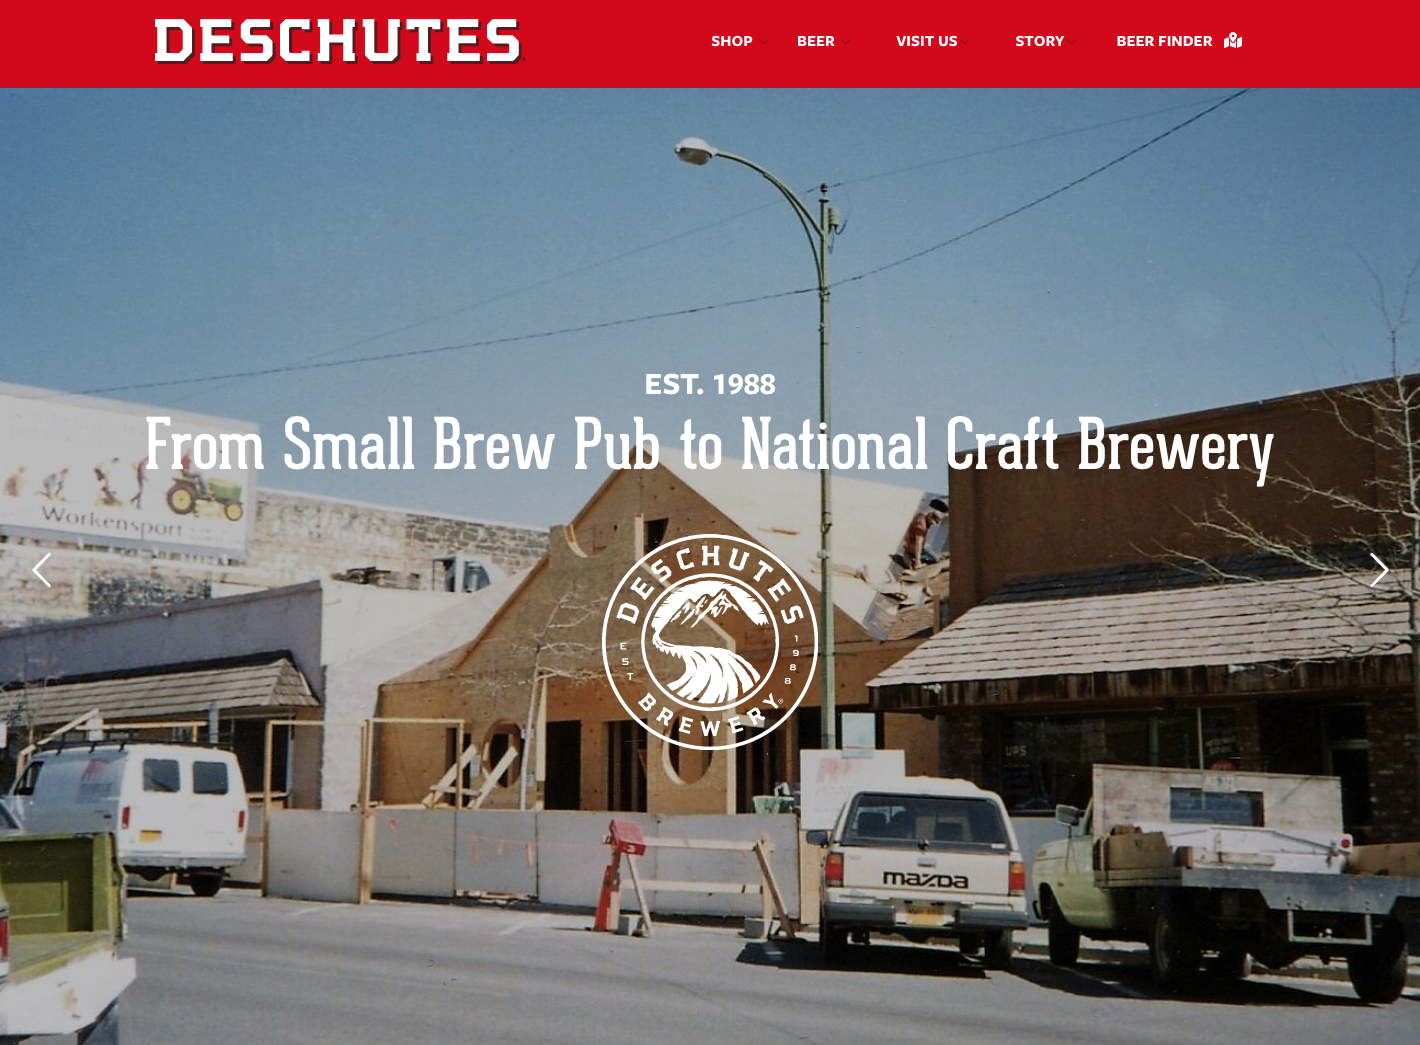 From Small Brew Pub to National Craft Brewery